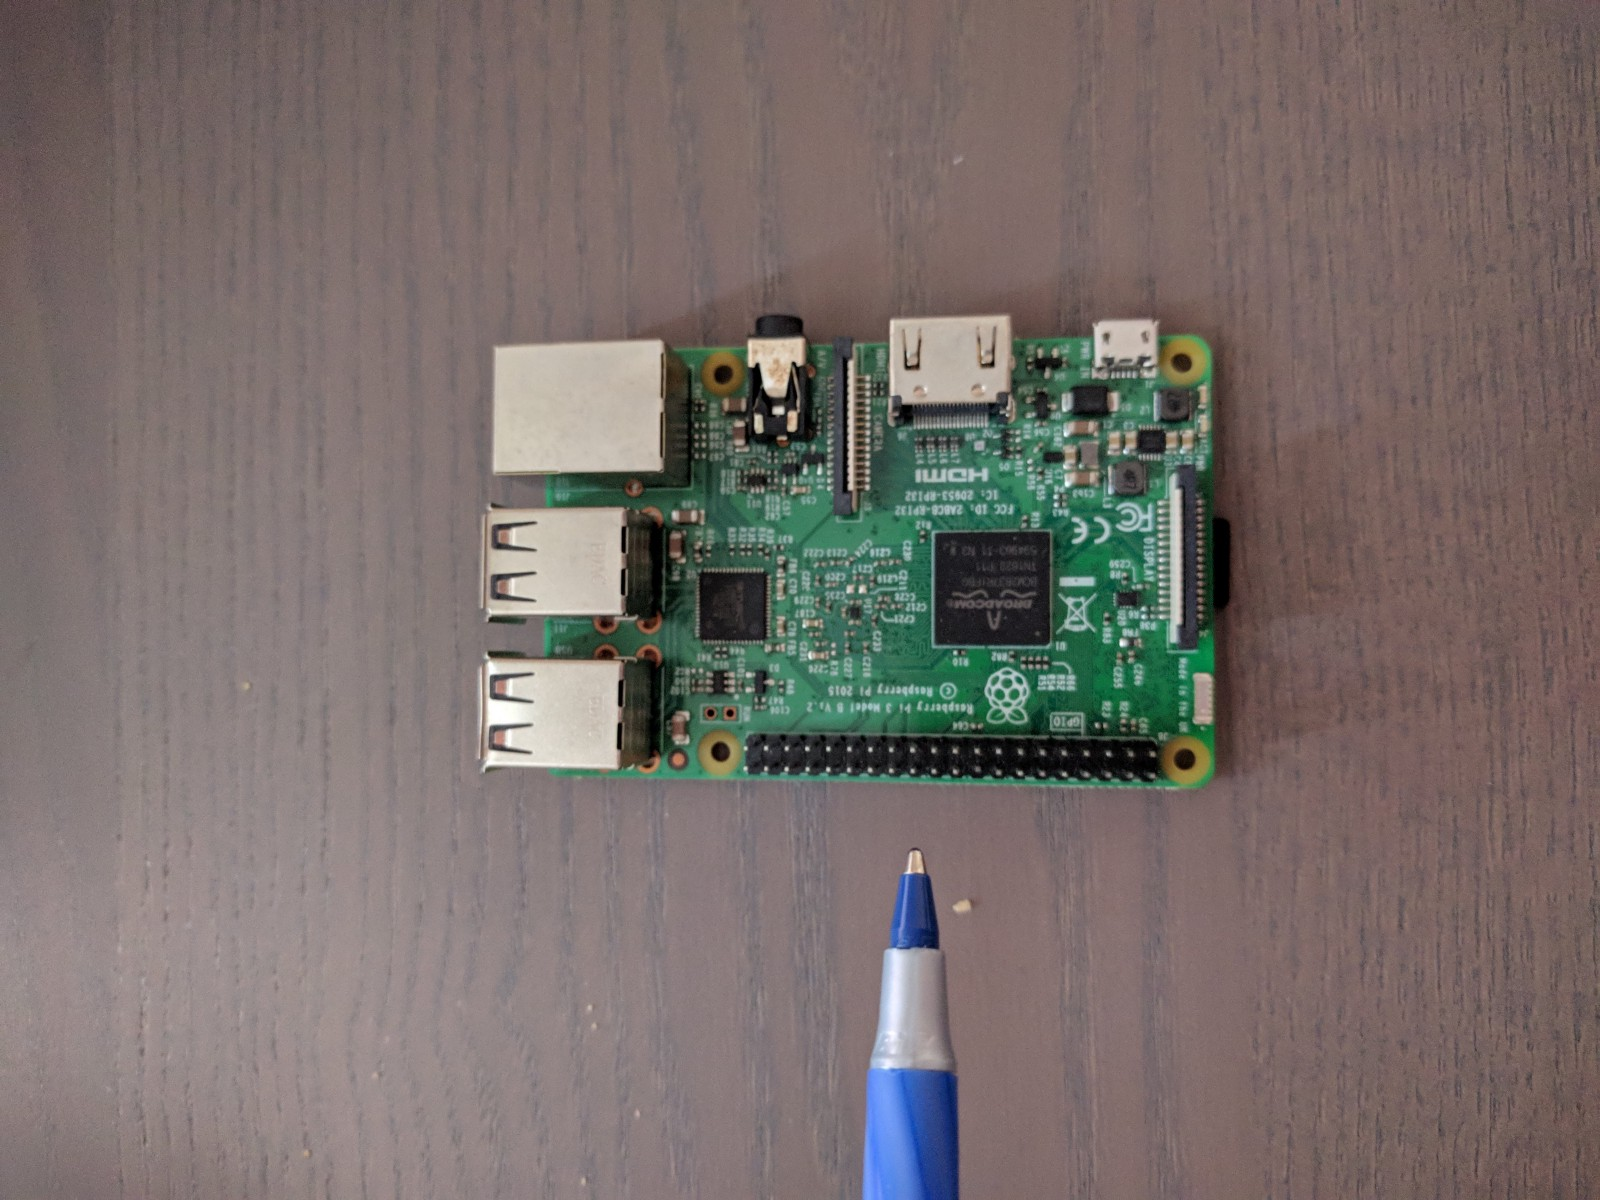 hight resolution of pen is pointing to the pins on the bottom of the raspberry pi